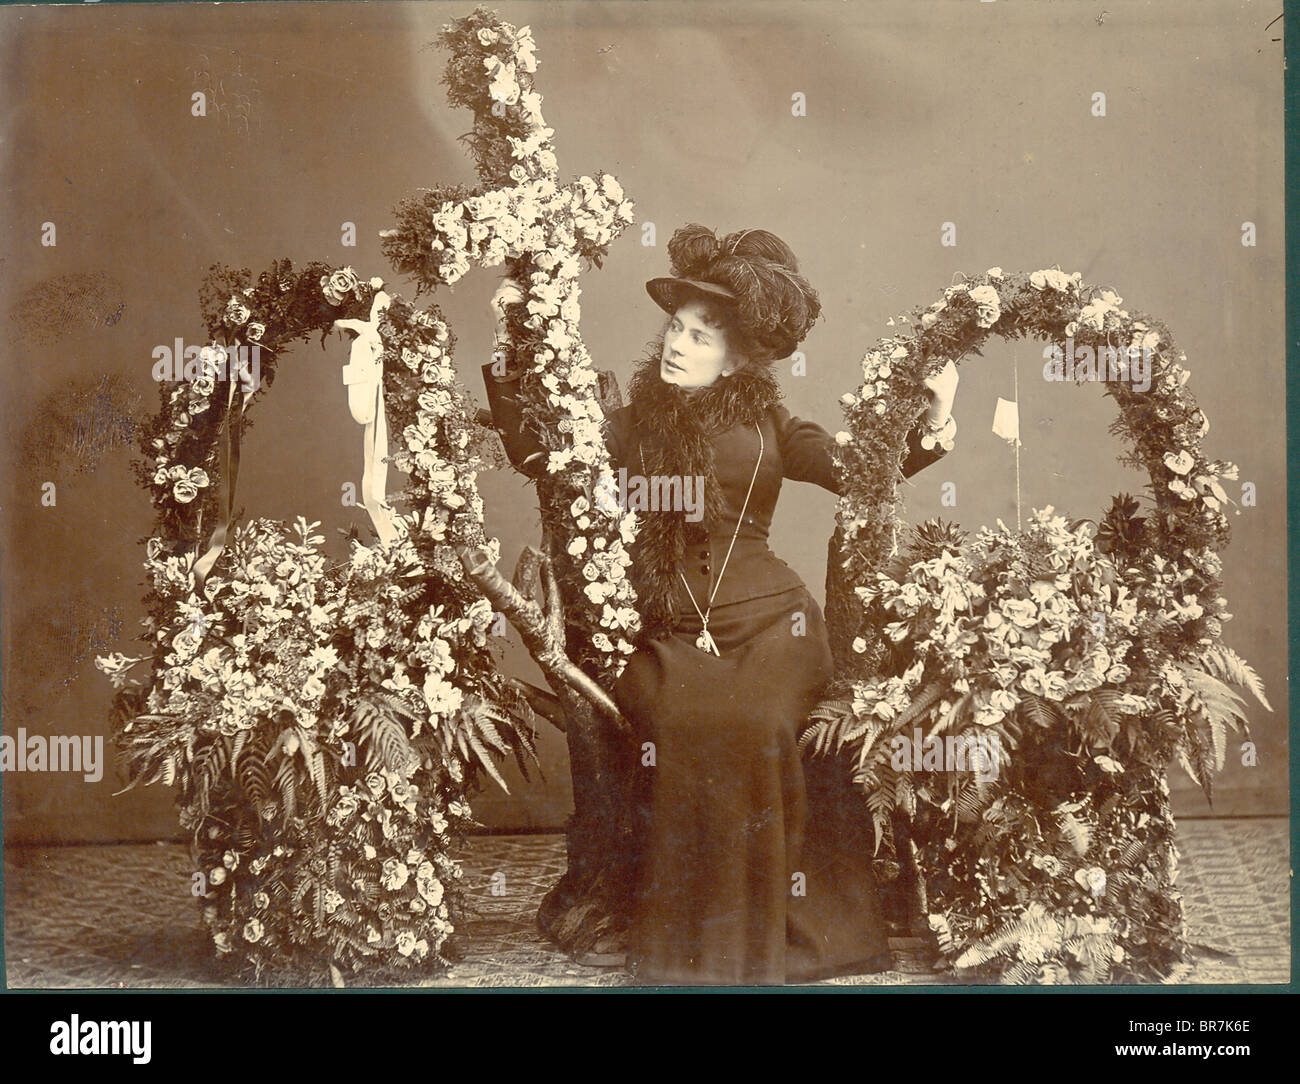 Funeral flowers stock photos funeral flowers stock images alamy victorian cabinet photograph of funeral flowers stock image izmirmasajfo Gallery